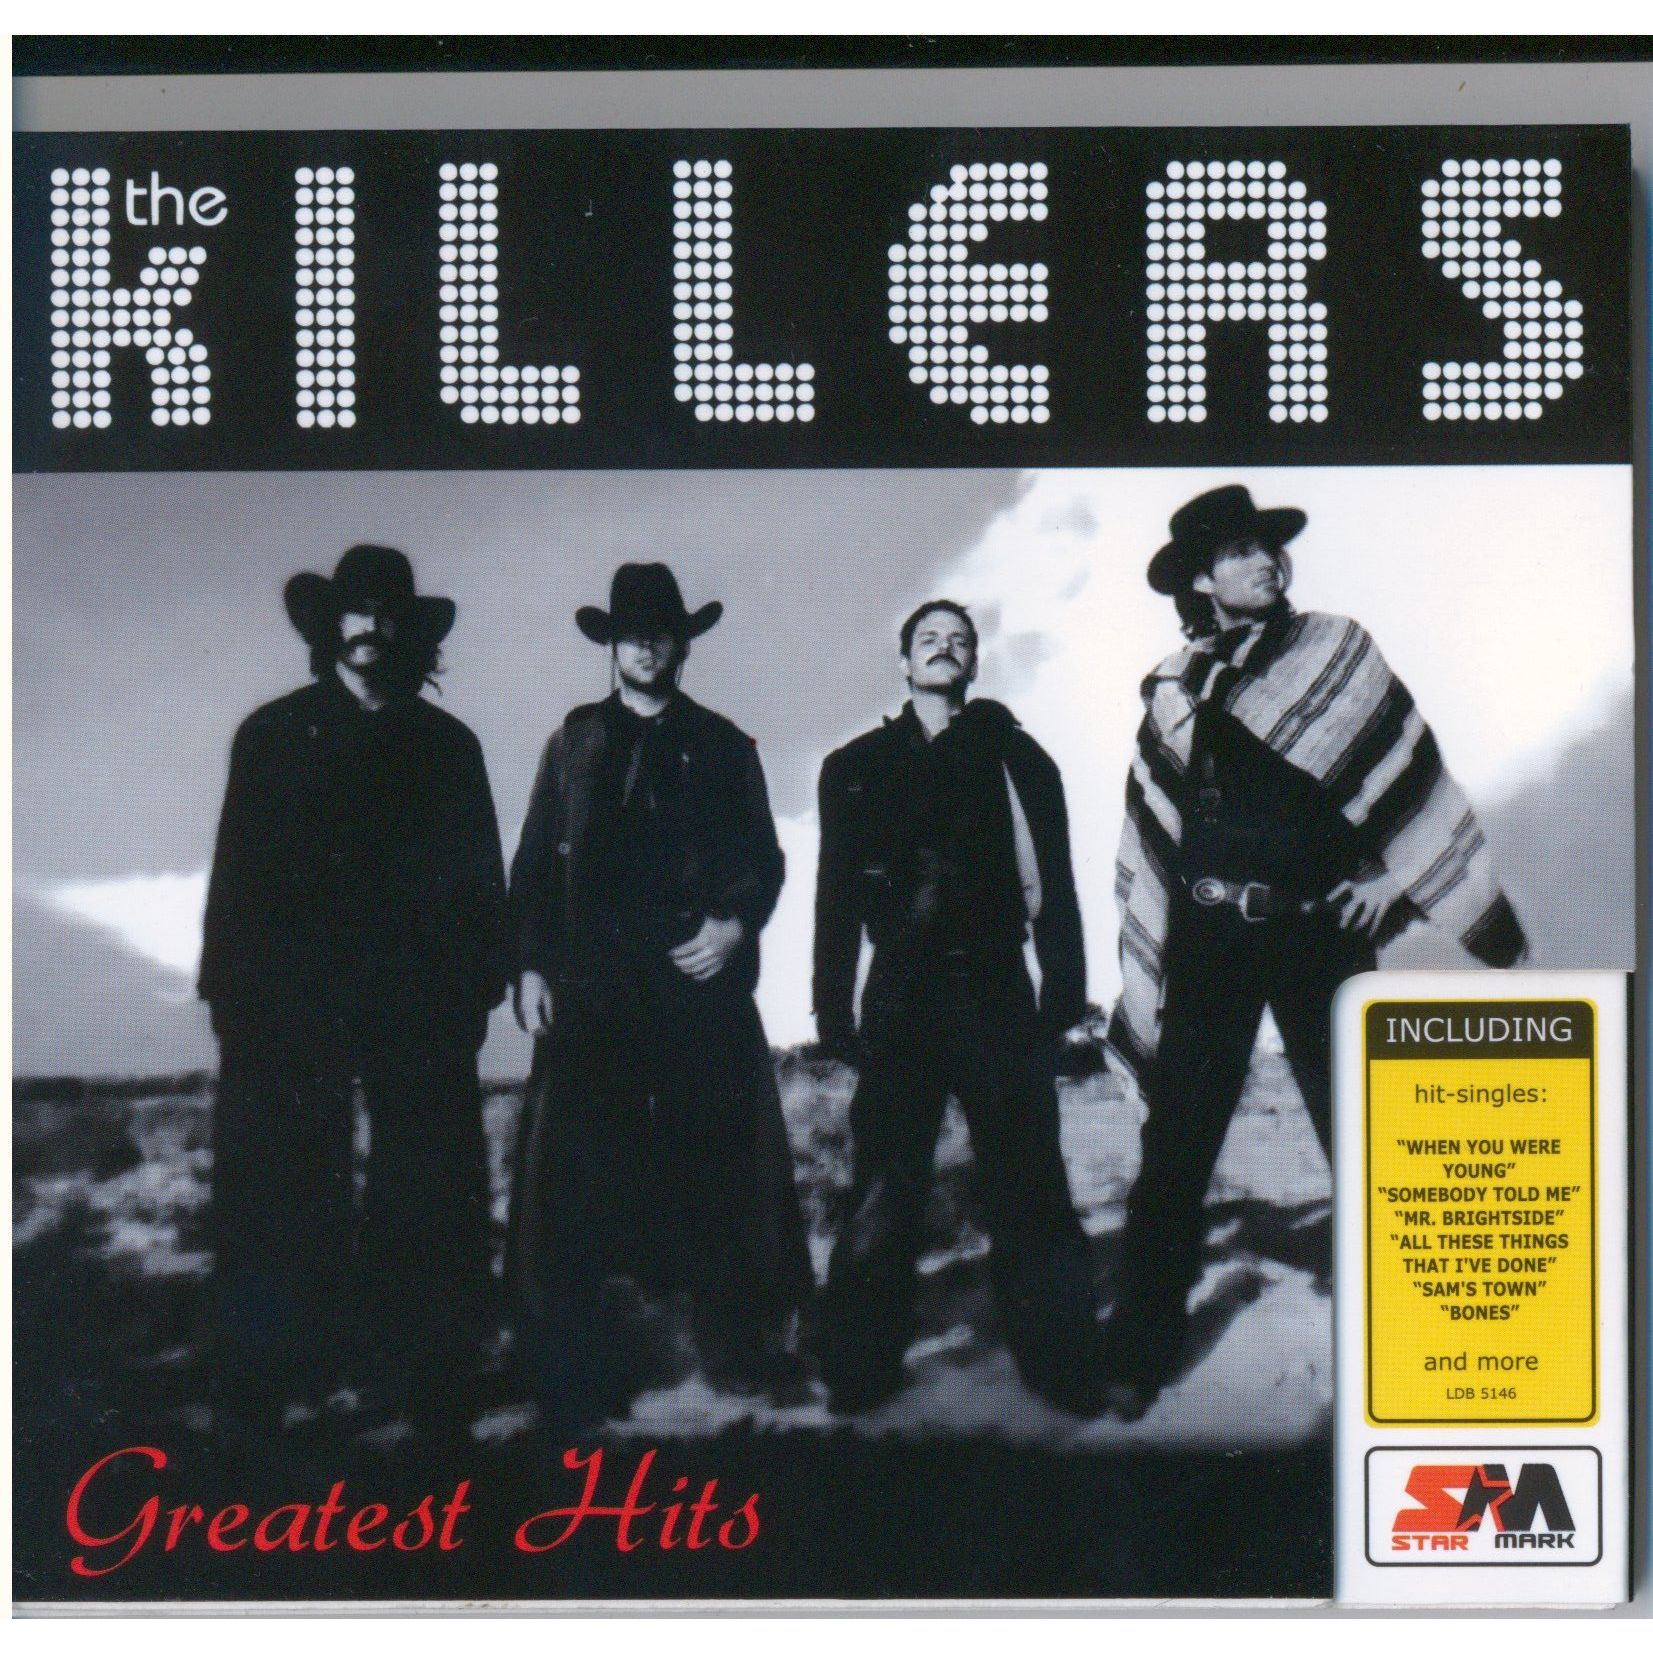 The-Killers-Greatest-Hits-cover.jpg